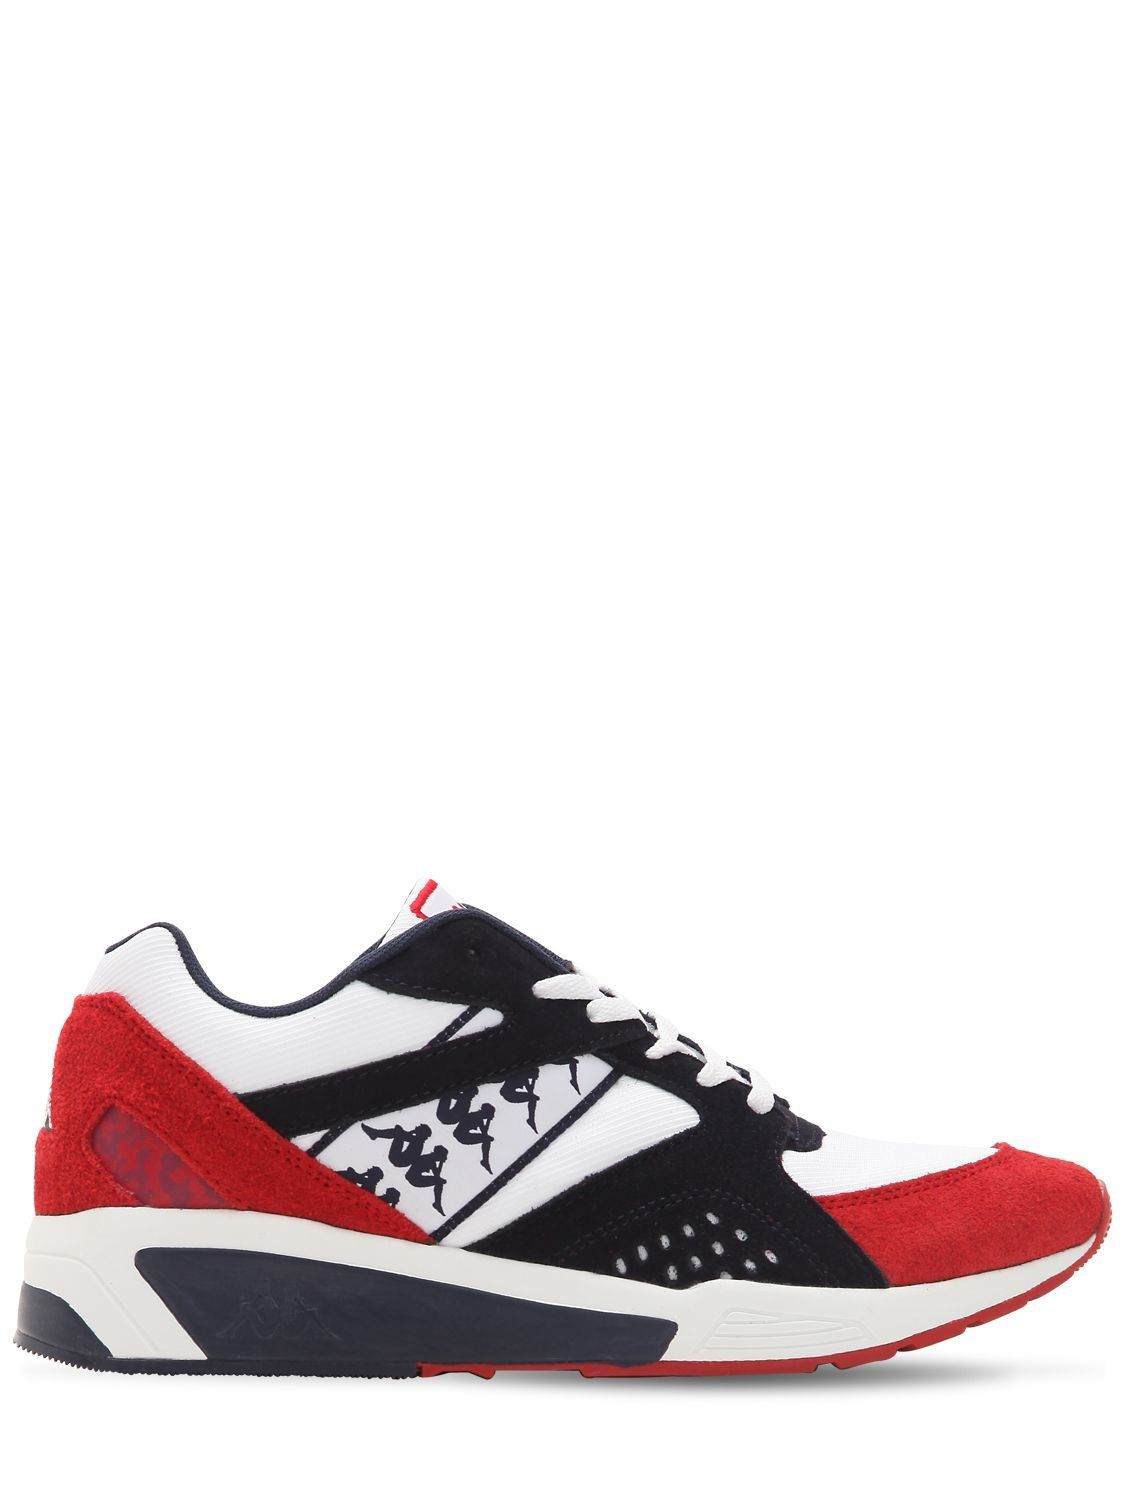 separation shoes 4e31a 101fc KAPPA MESH   SUEDE RUNNING SNEAKERS.  kappa  shoes